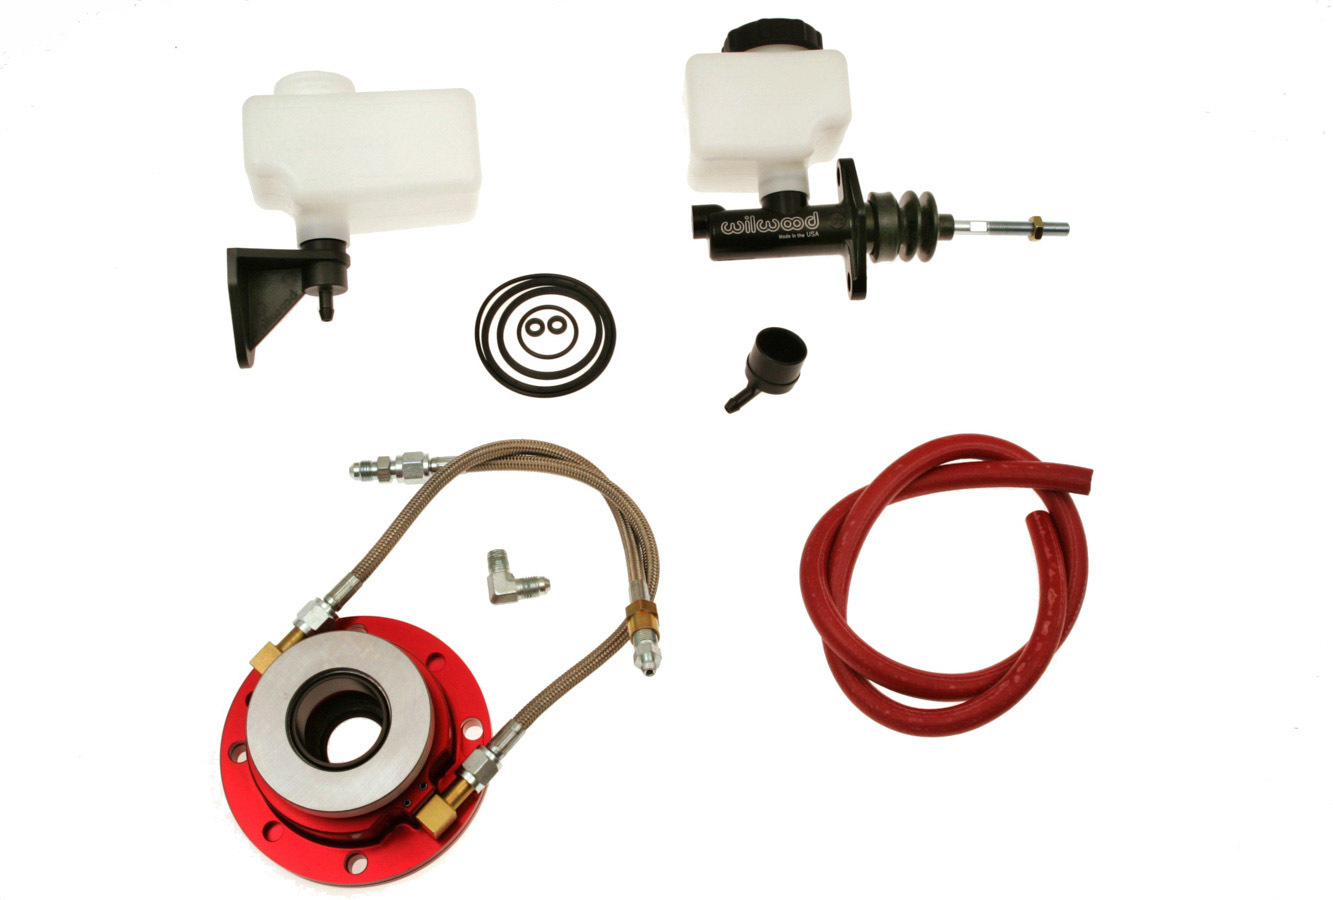 McLeod 13005 Throwout Bearing Kit, 1300 Series, Hydraulic, Bolt-On, Braided Stainless Lines, 3/4 in Master Cylinder, GM Muncie, Kit